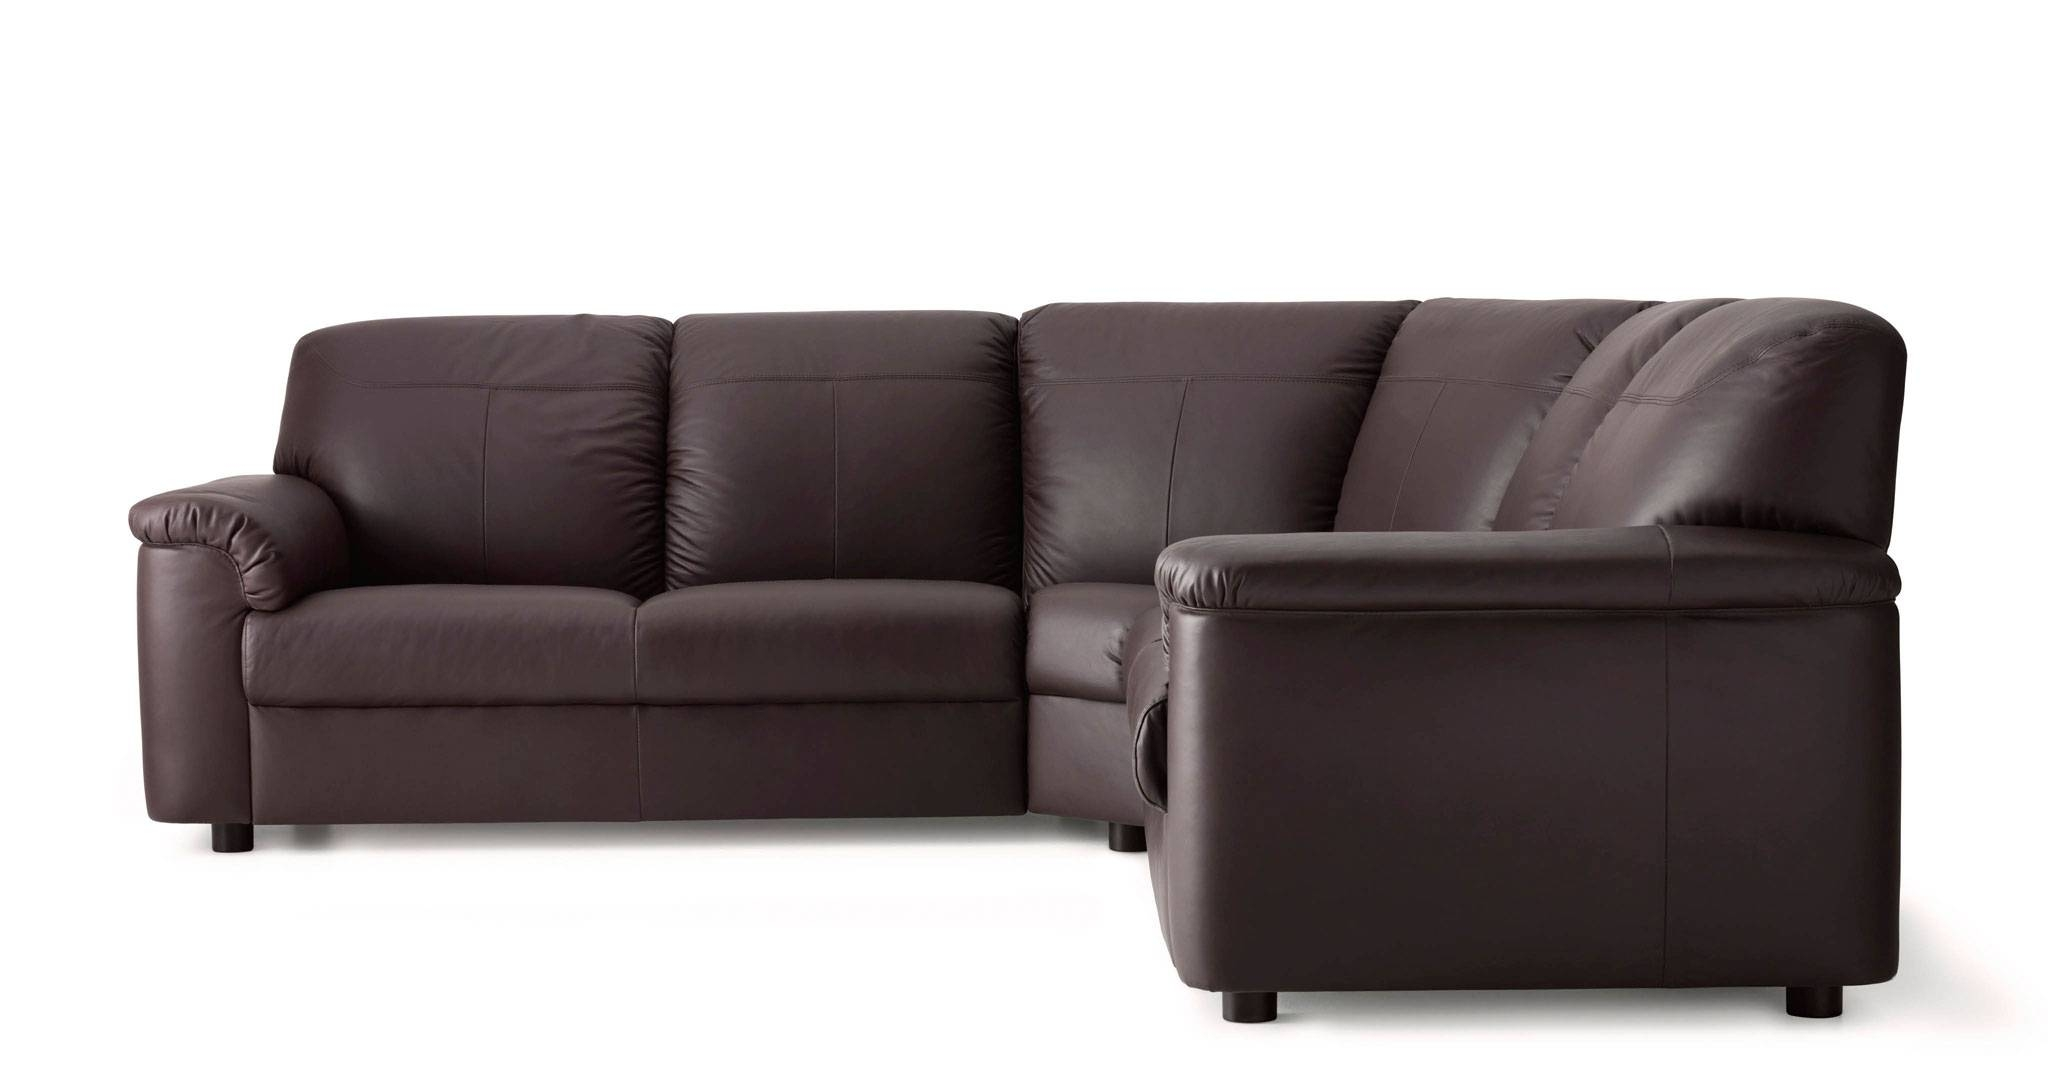 Leather & Coated Fabric Corner Sofas | Ikea In Small Brown Leather Corner Sofas (View 10 of 30)